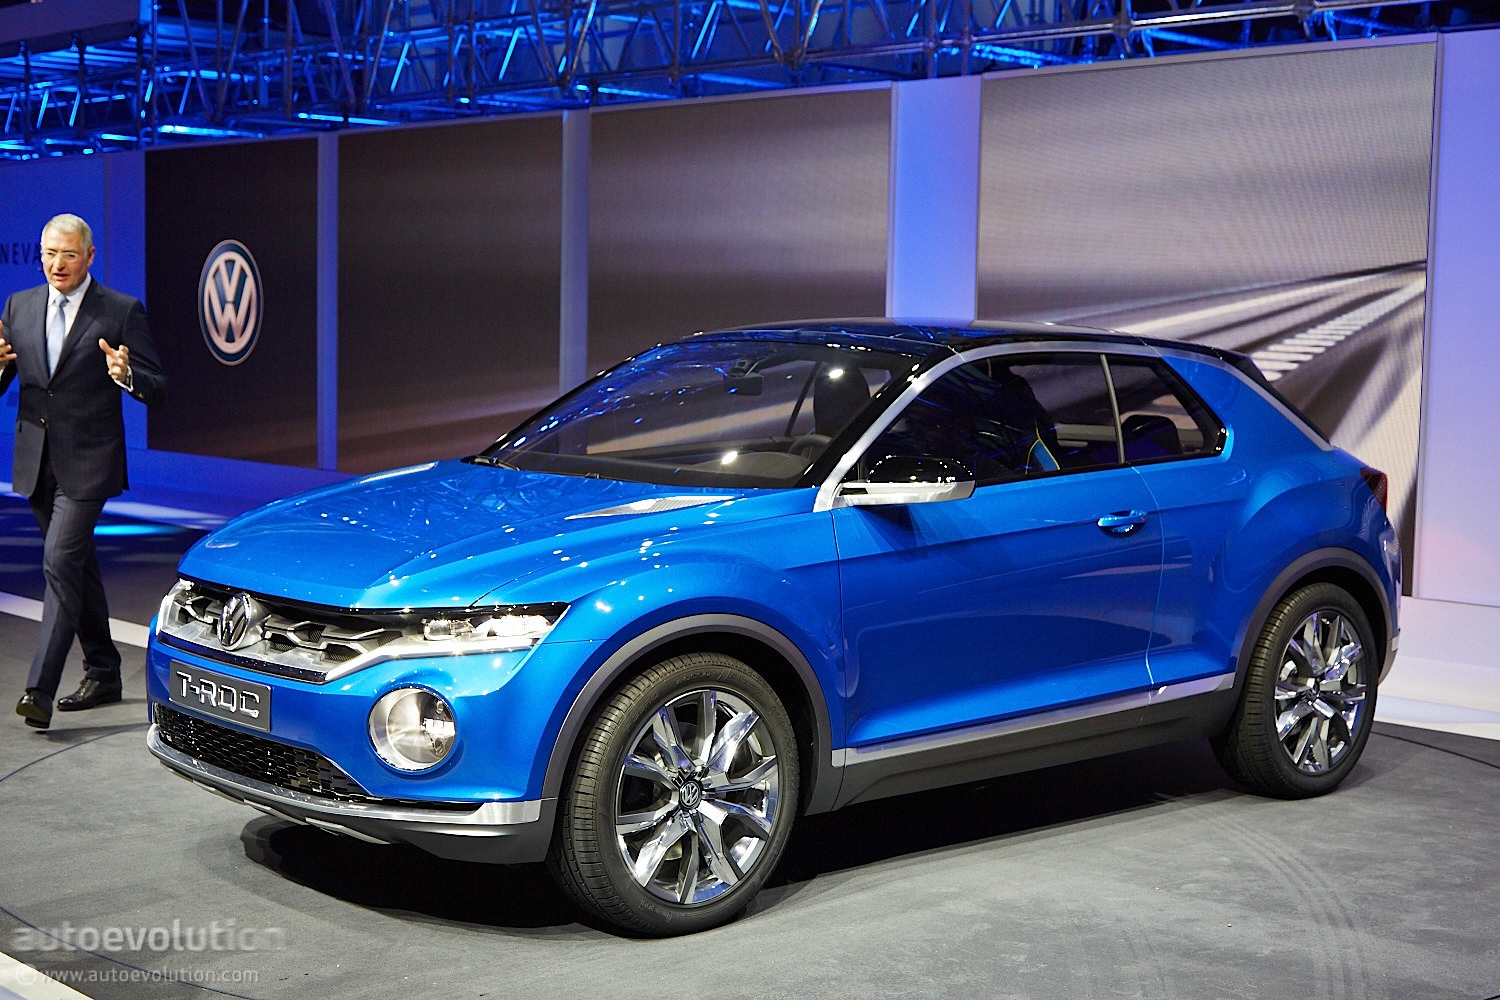 Volkswagen T Roc Concept Hints At Future Crossover Live Photos on Vw Beetle Dune Concept